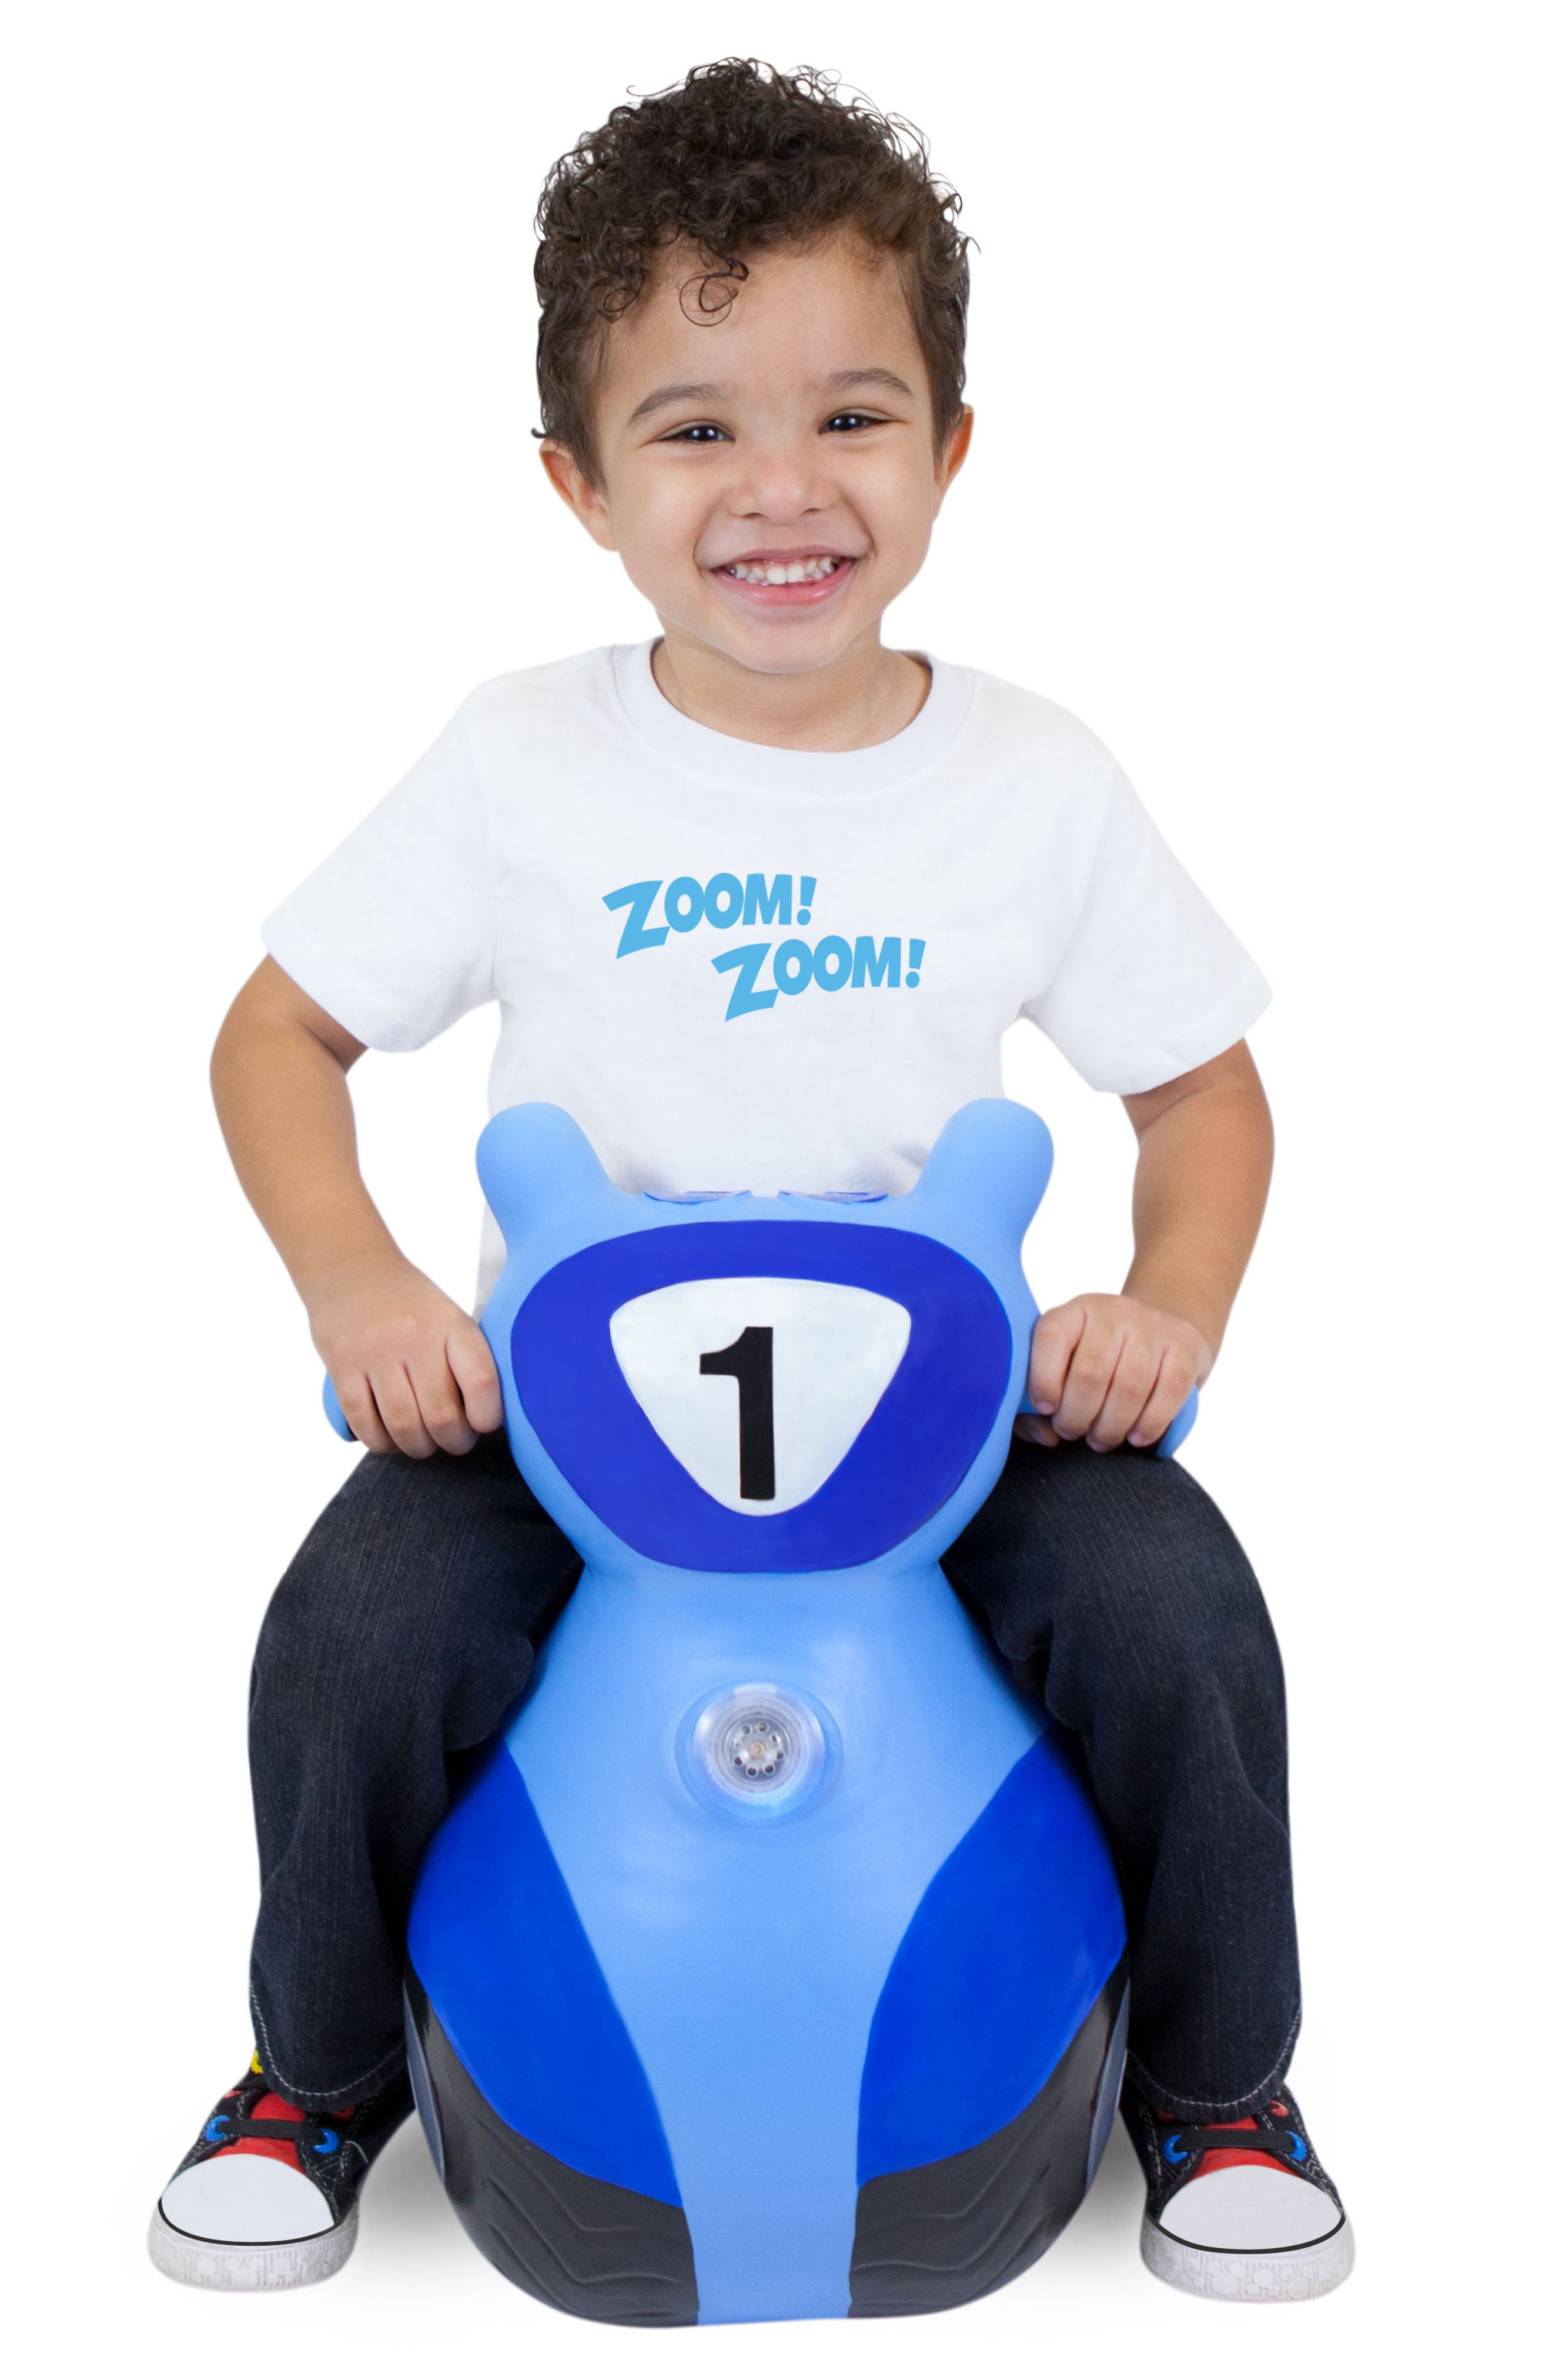 Scooter Bouncy Ride-On Scooter Toy,                             Alternate thumbnail 3, color,                             BLUE